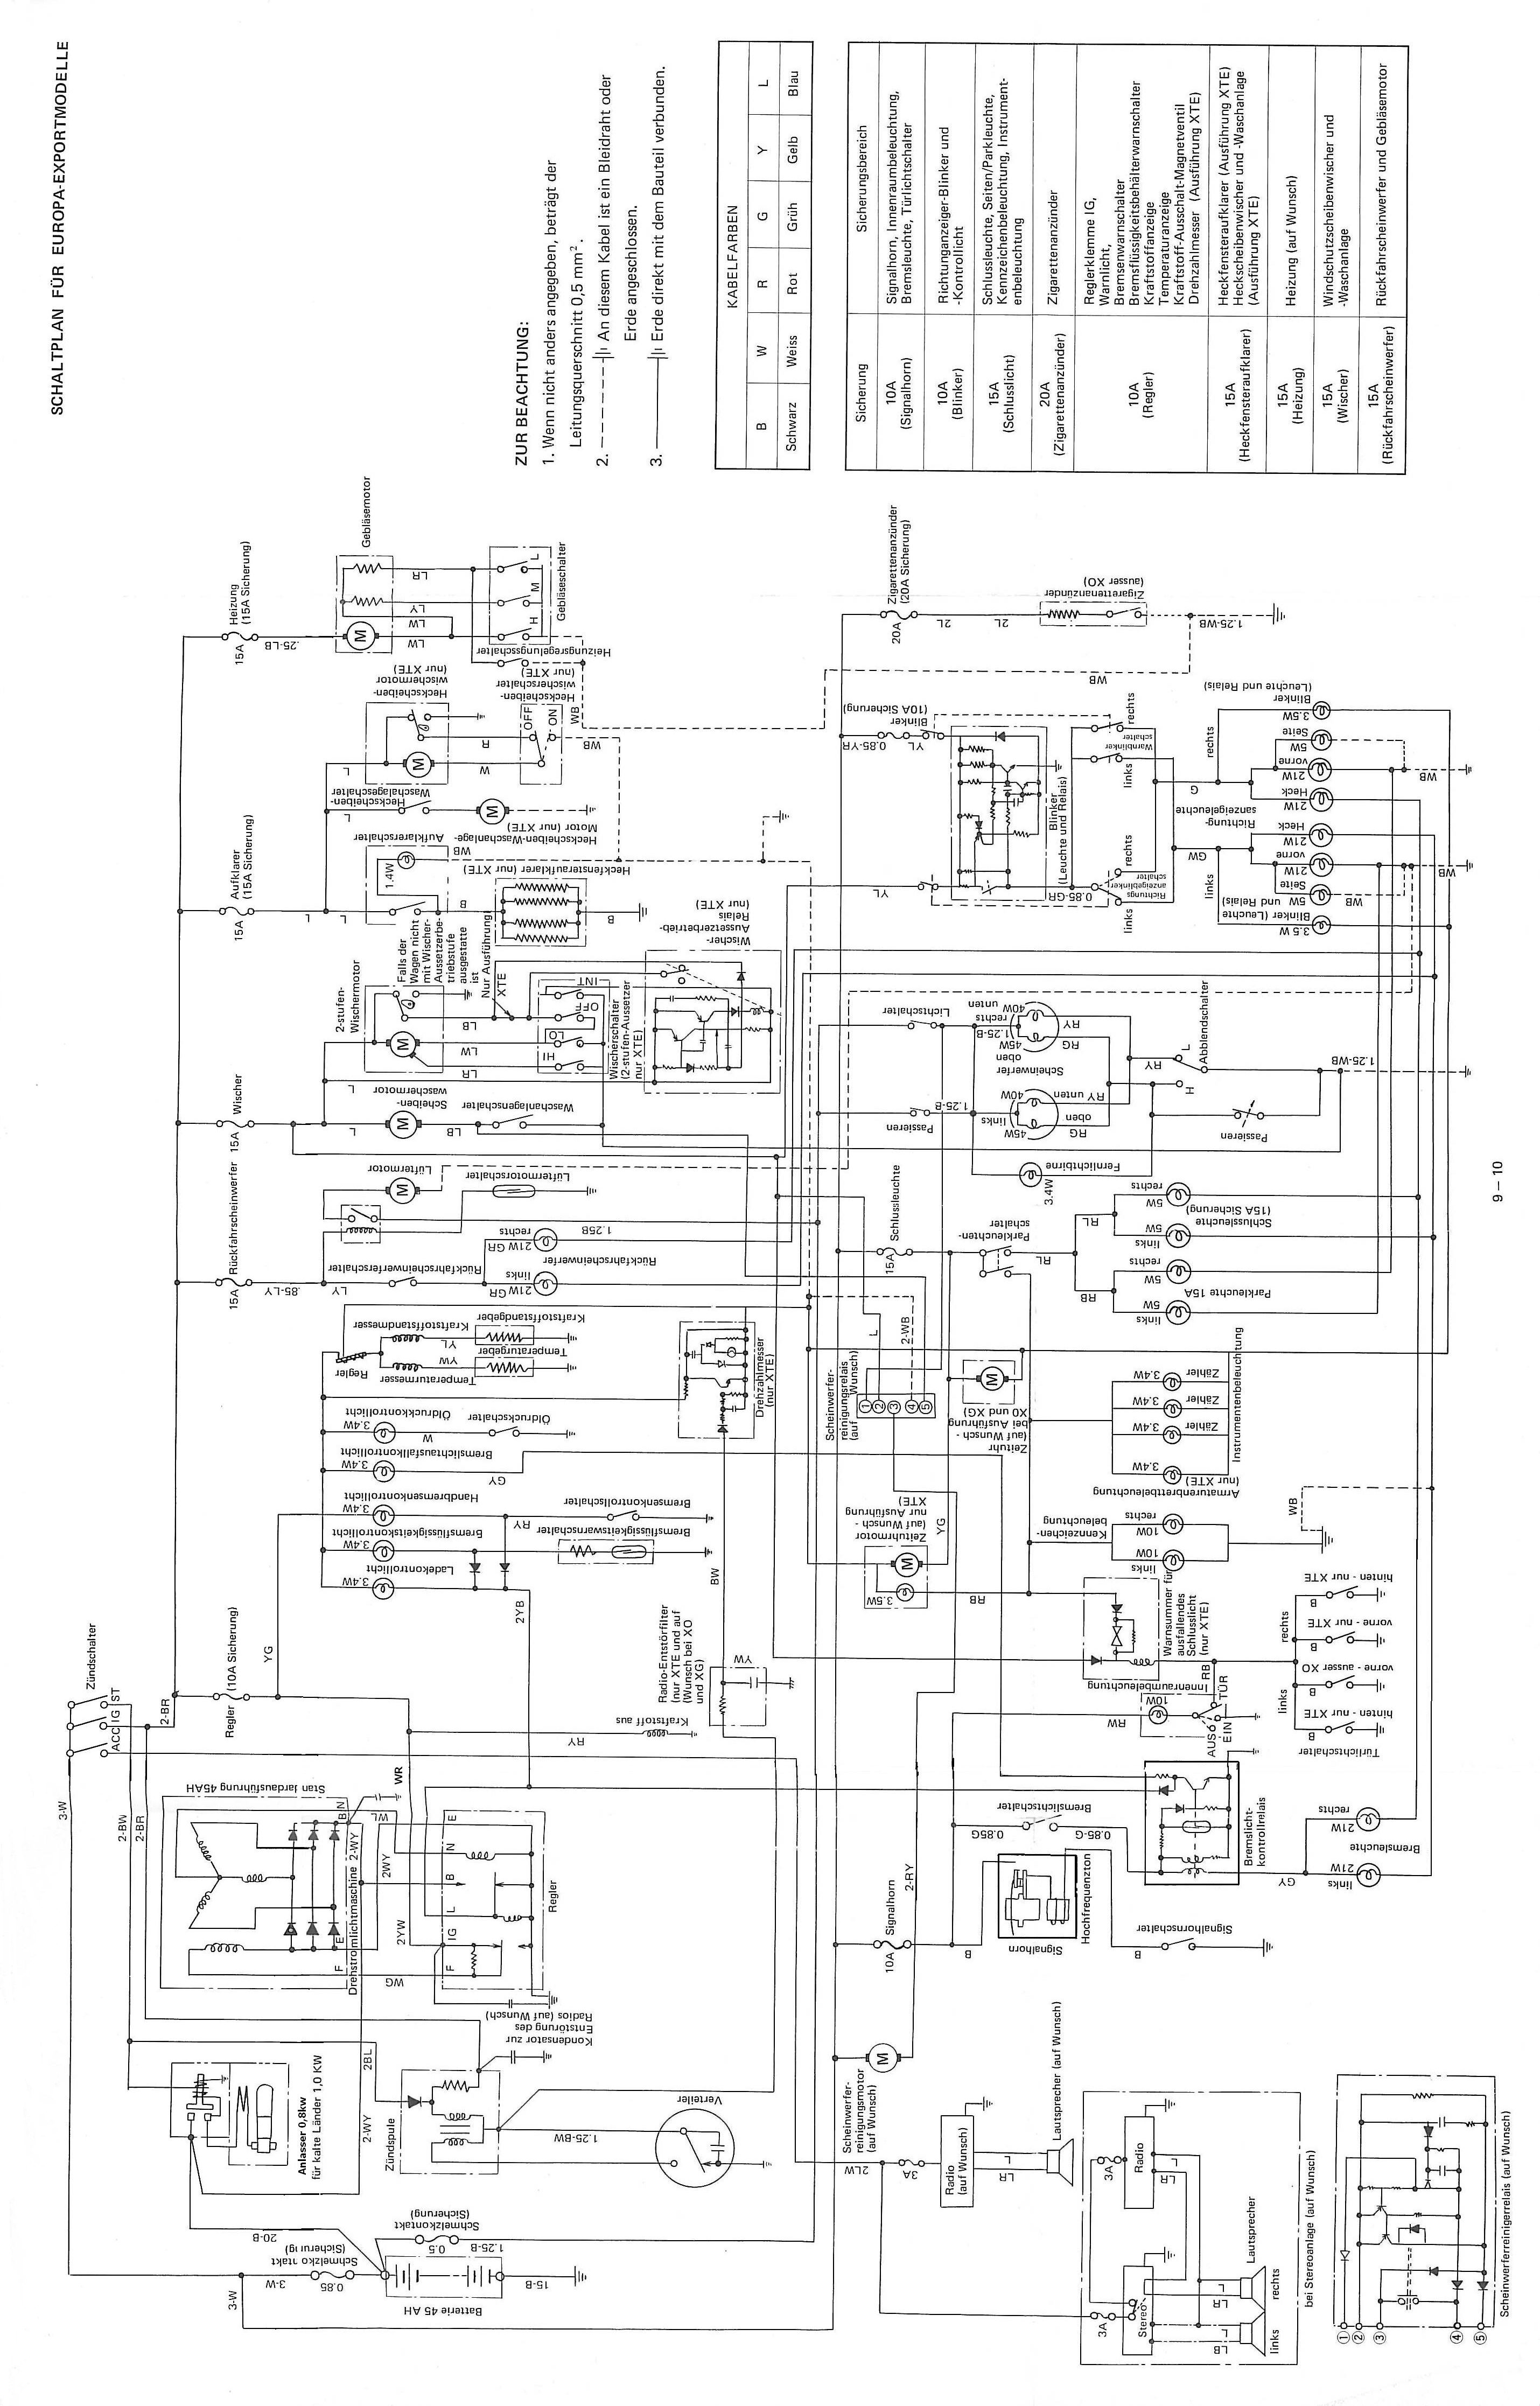 Ab 4210 Daihatsu Hijet Vacuum Hose Diagram Free Download Wiring